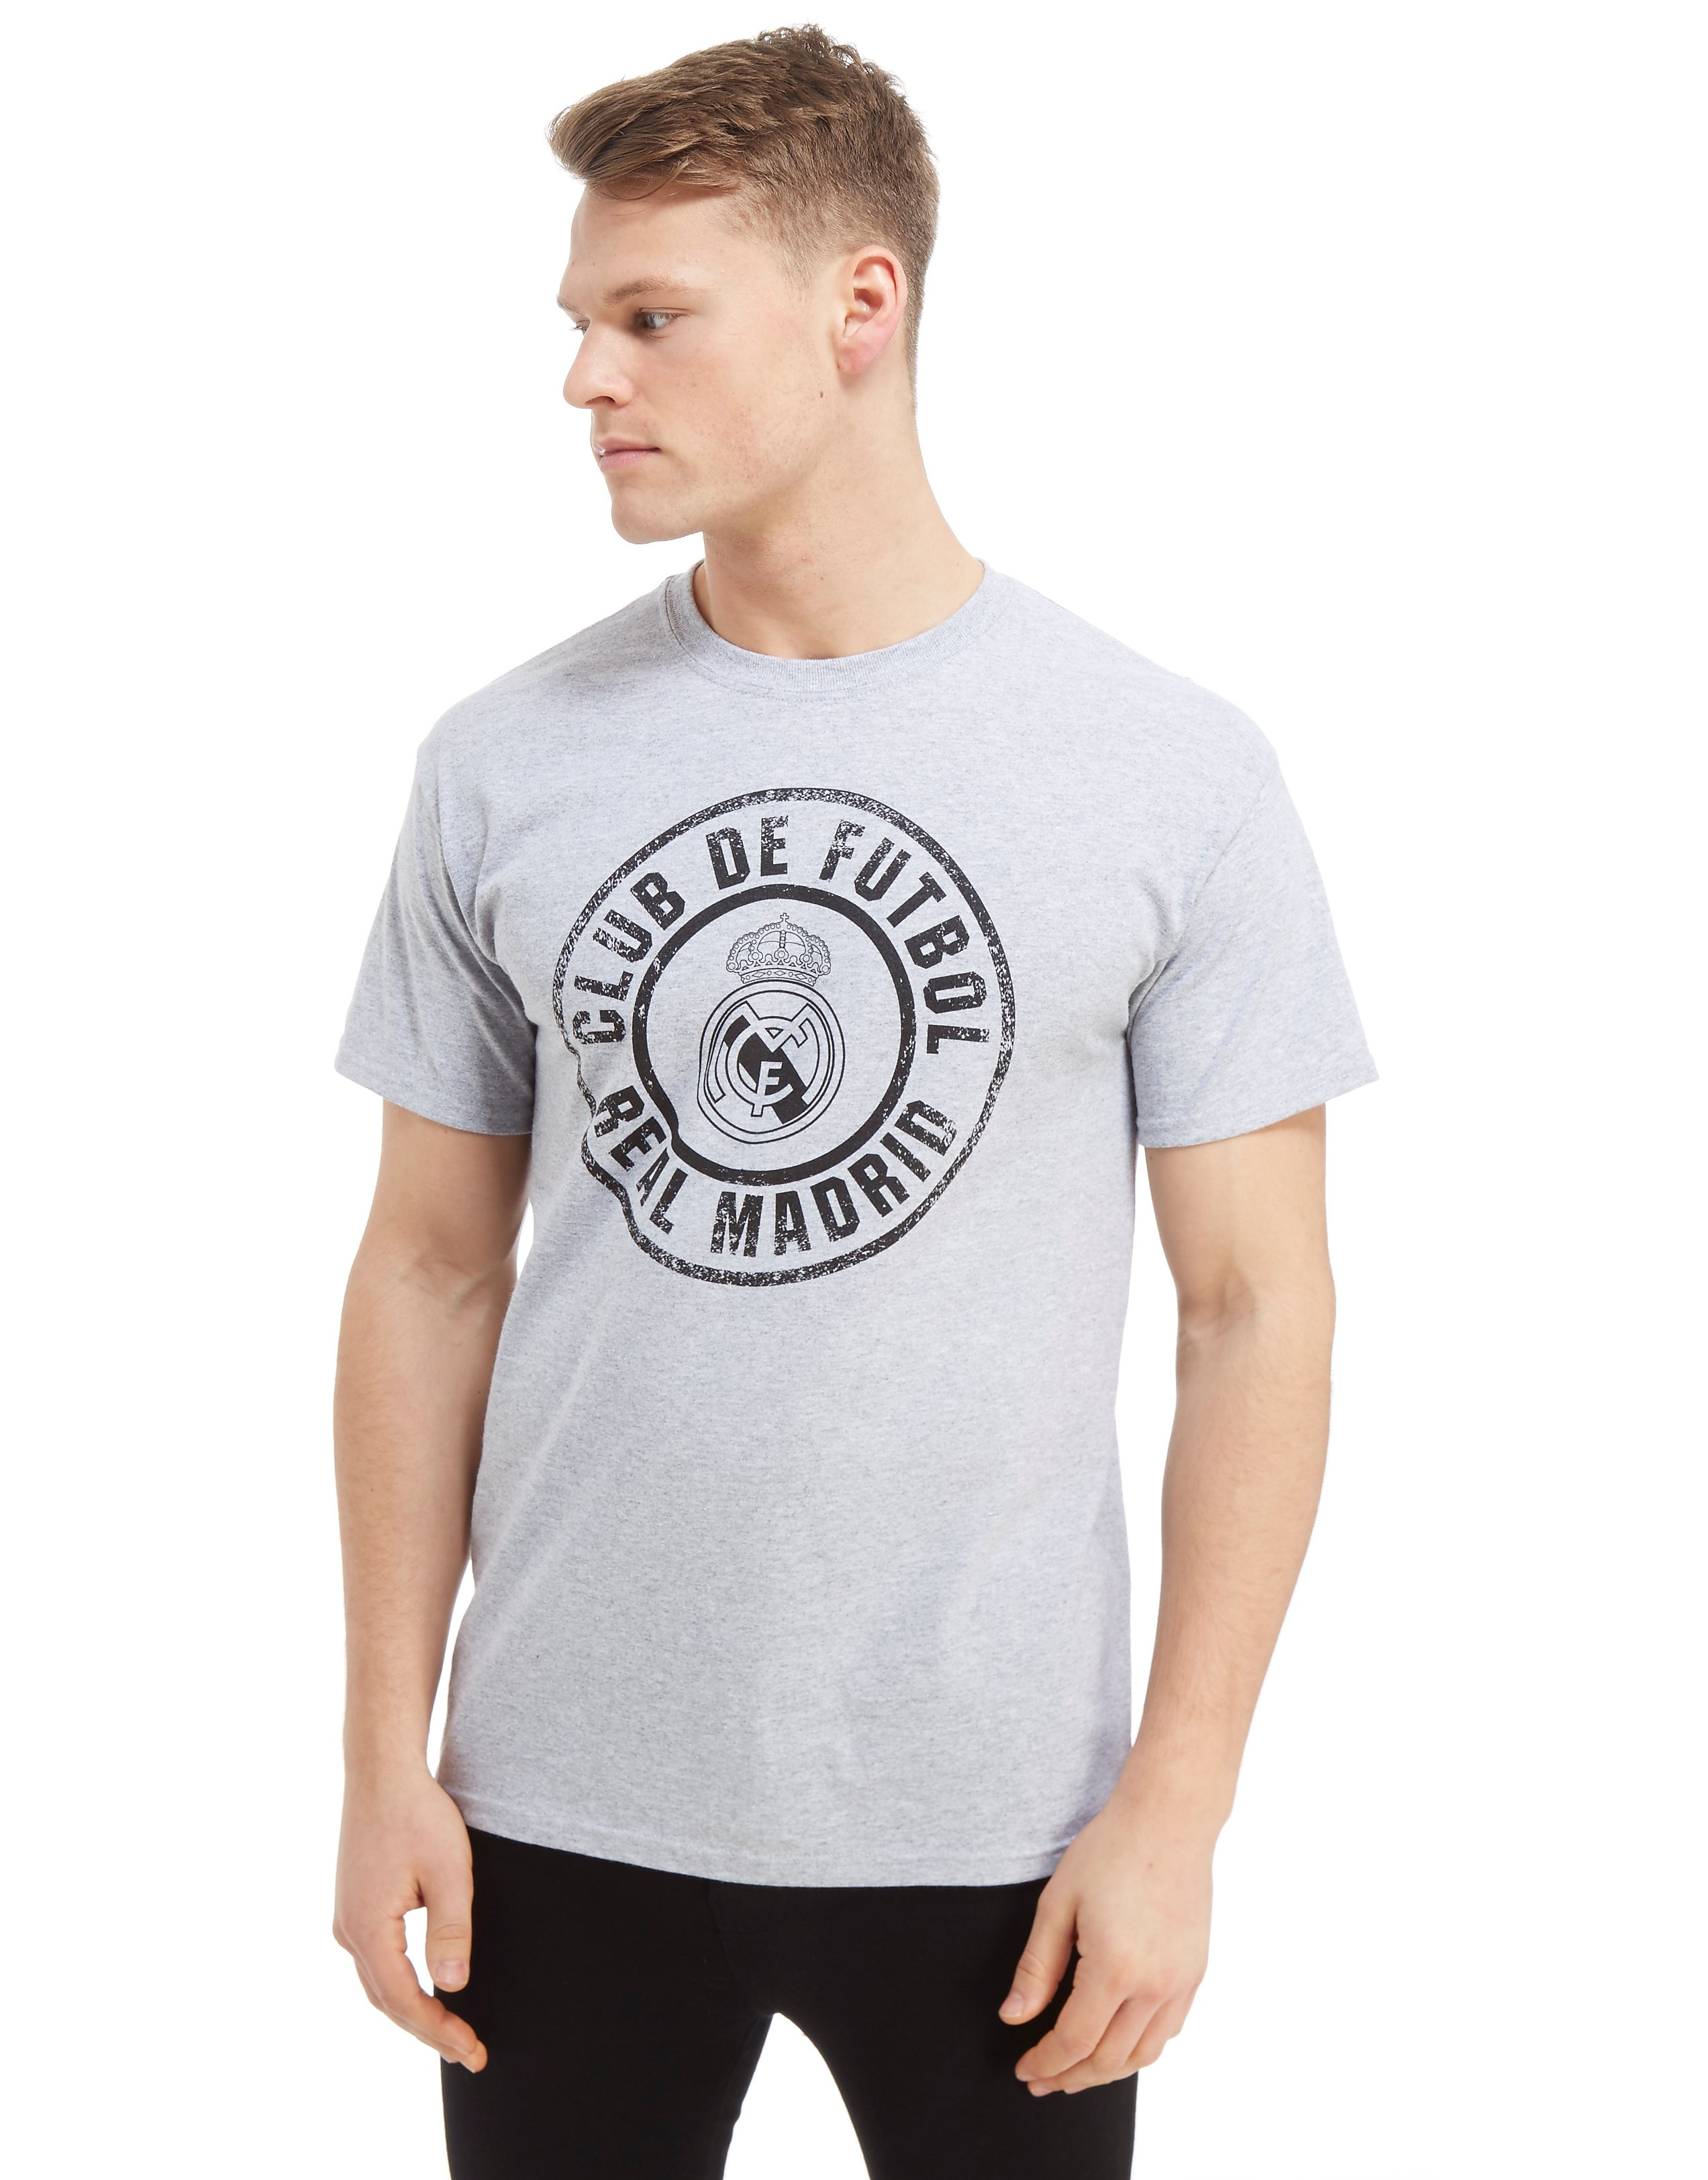 Official Team Real Madrid Seal Short Sleeve T-Shirt